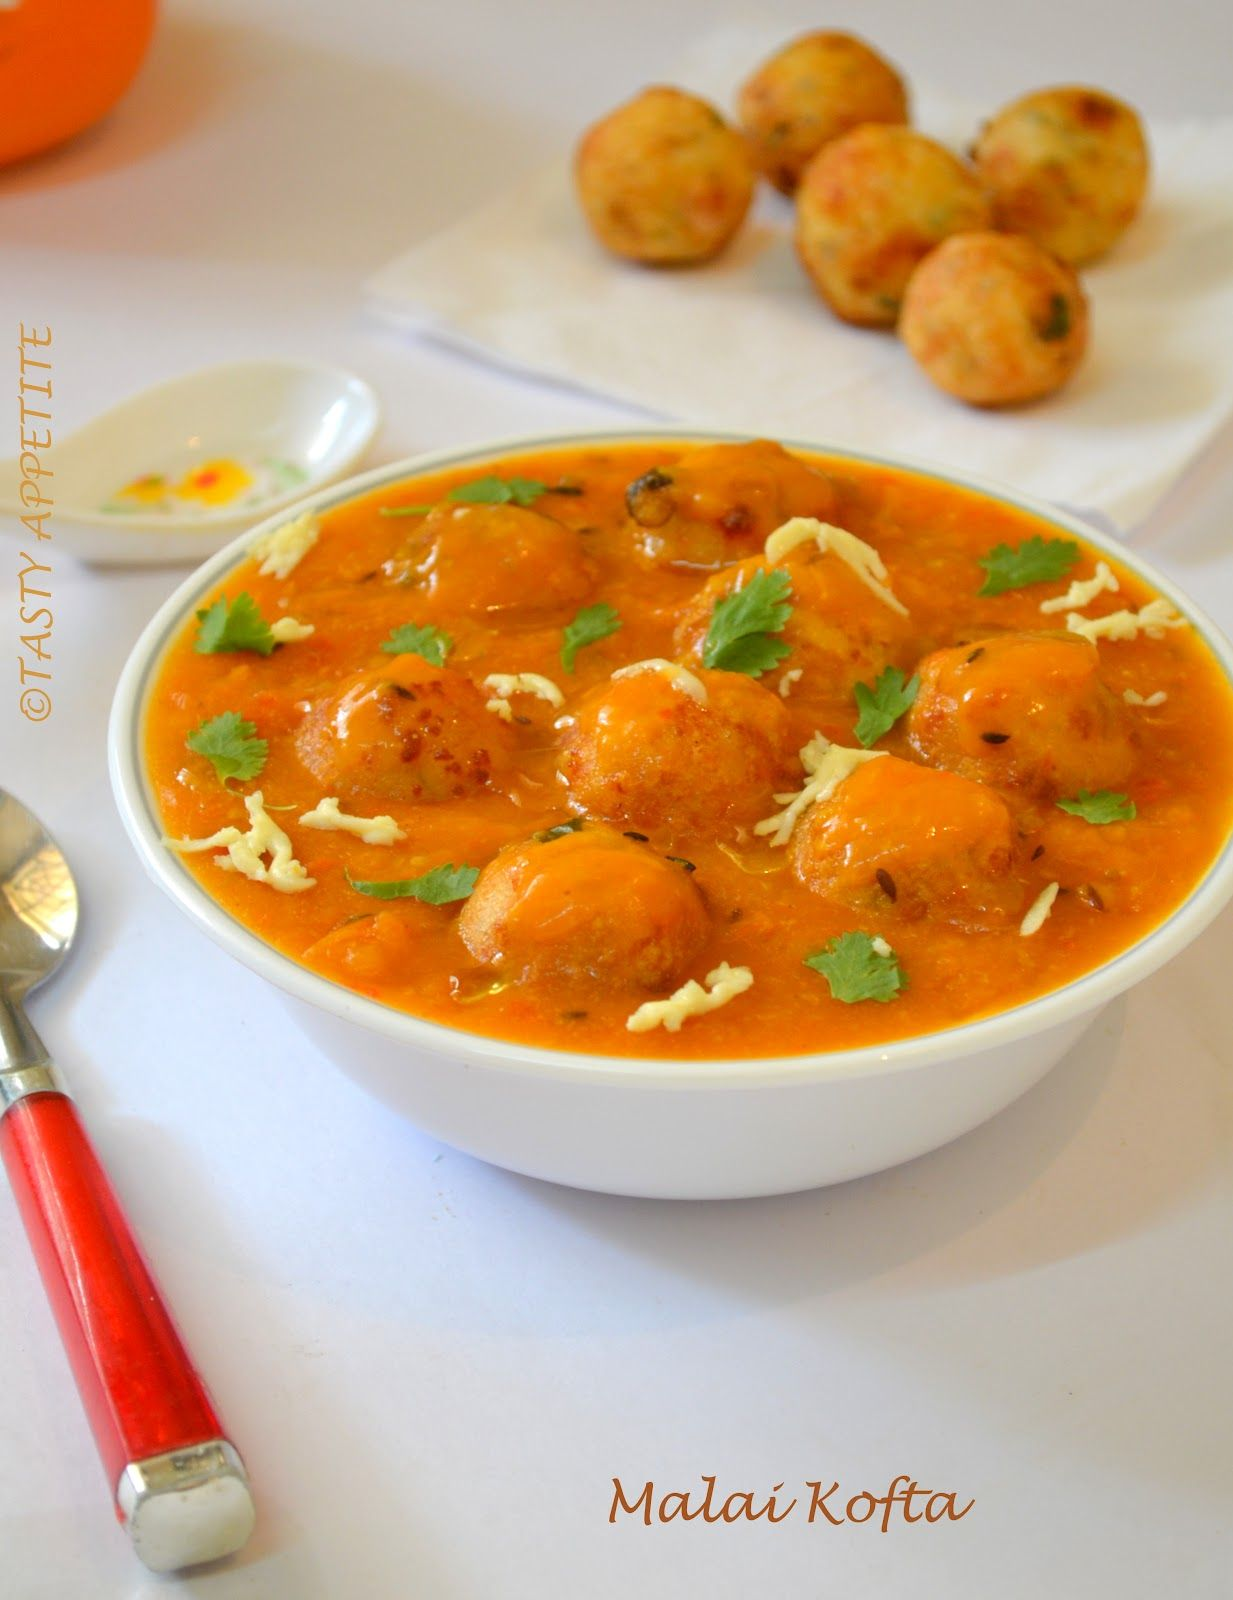 Malai kofta like us on youtube for more video recipes malai koftas malai kofta like us on youtube for more video recipes malai koftas is a delicious north indian speciality dish it forumfinder Images